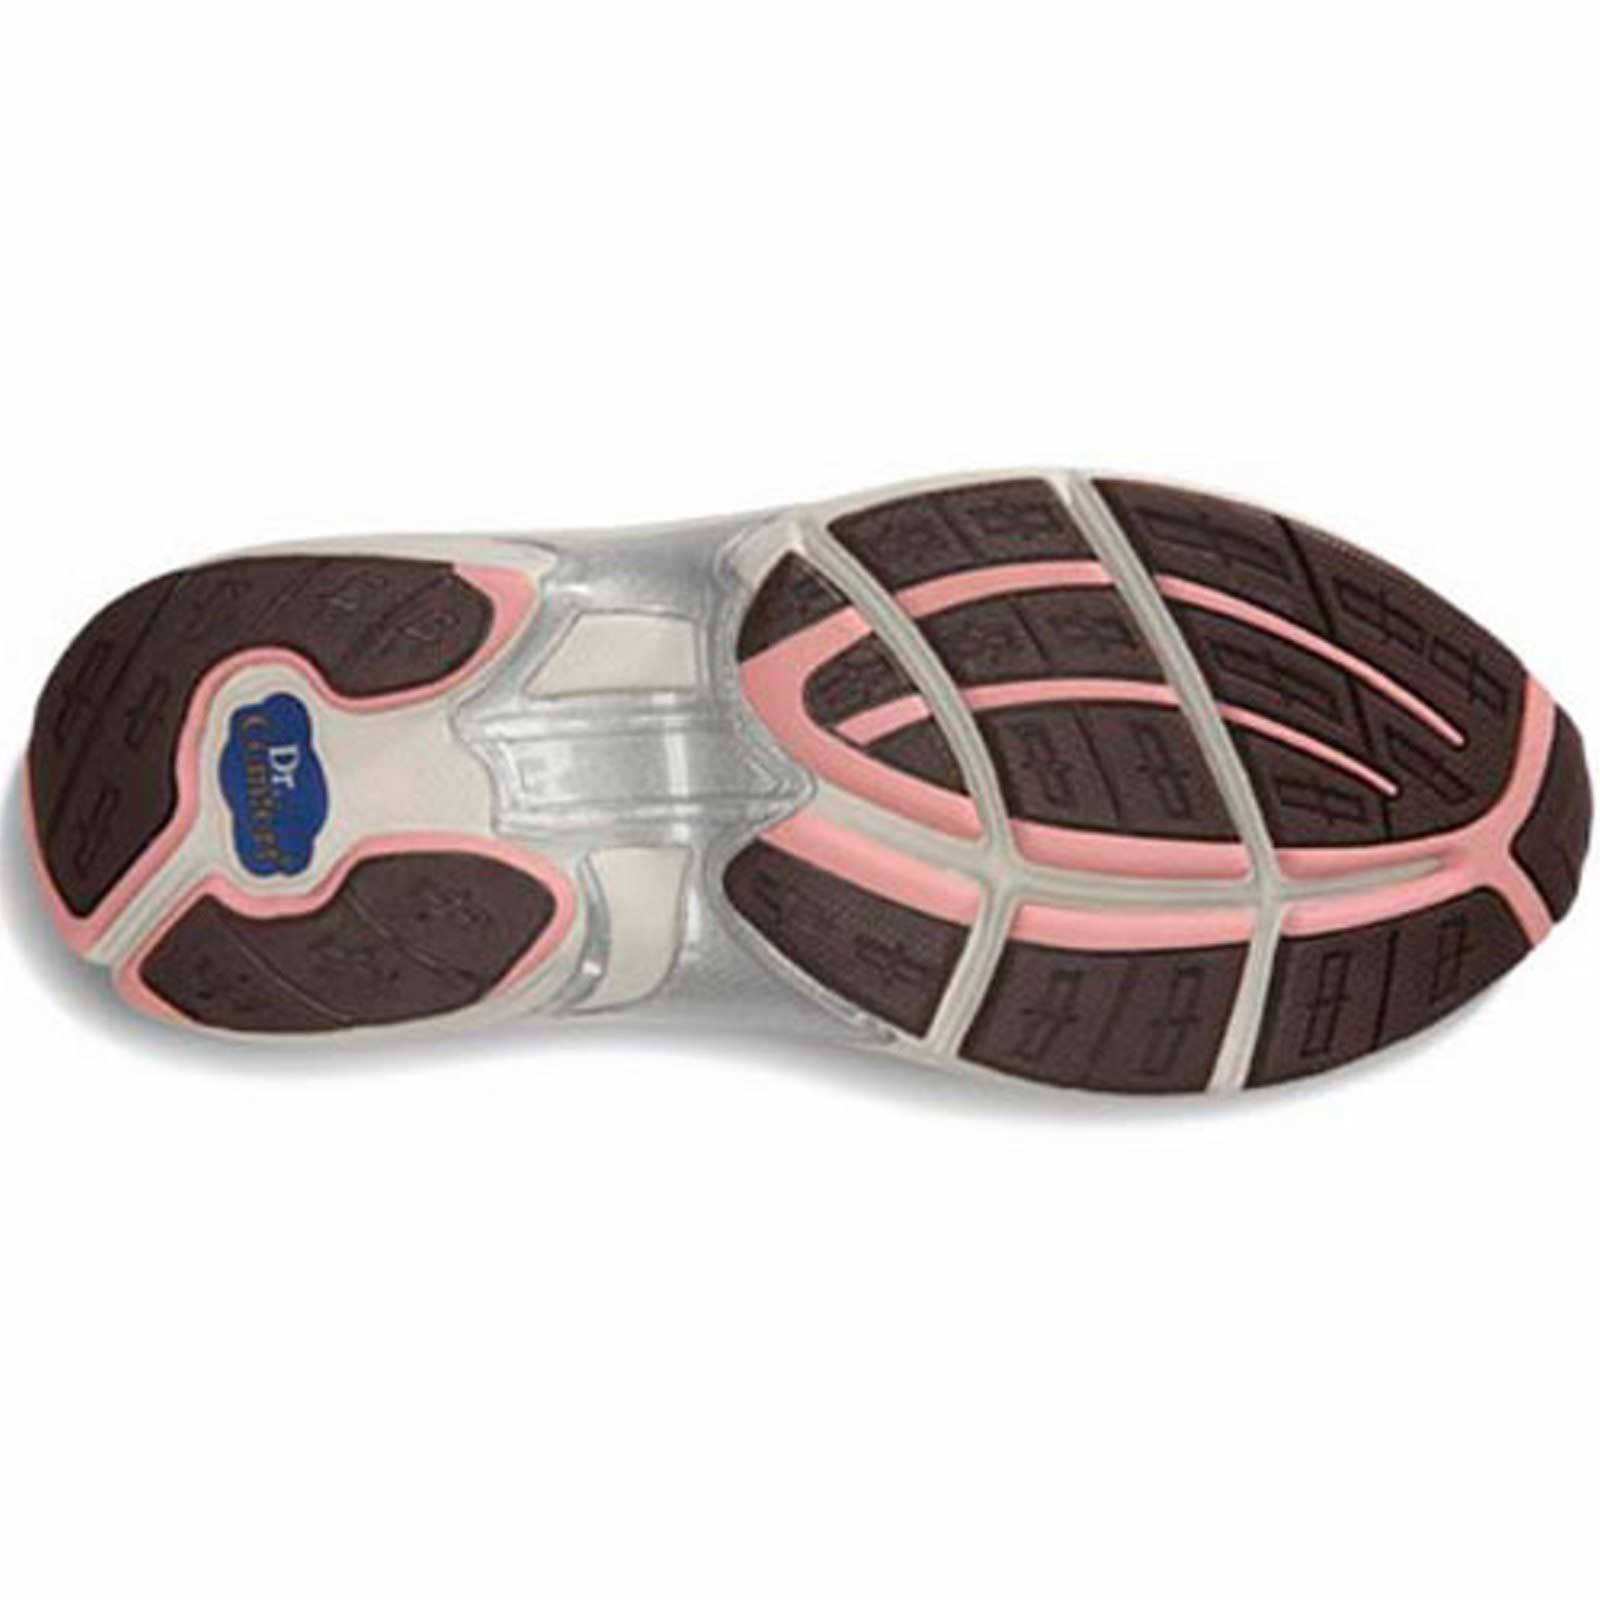 24626d80910a ... Dr. Comfort - Refresh - Athletic Cross Trainer ...